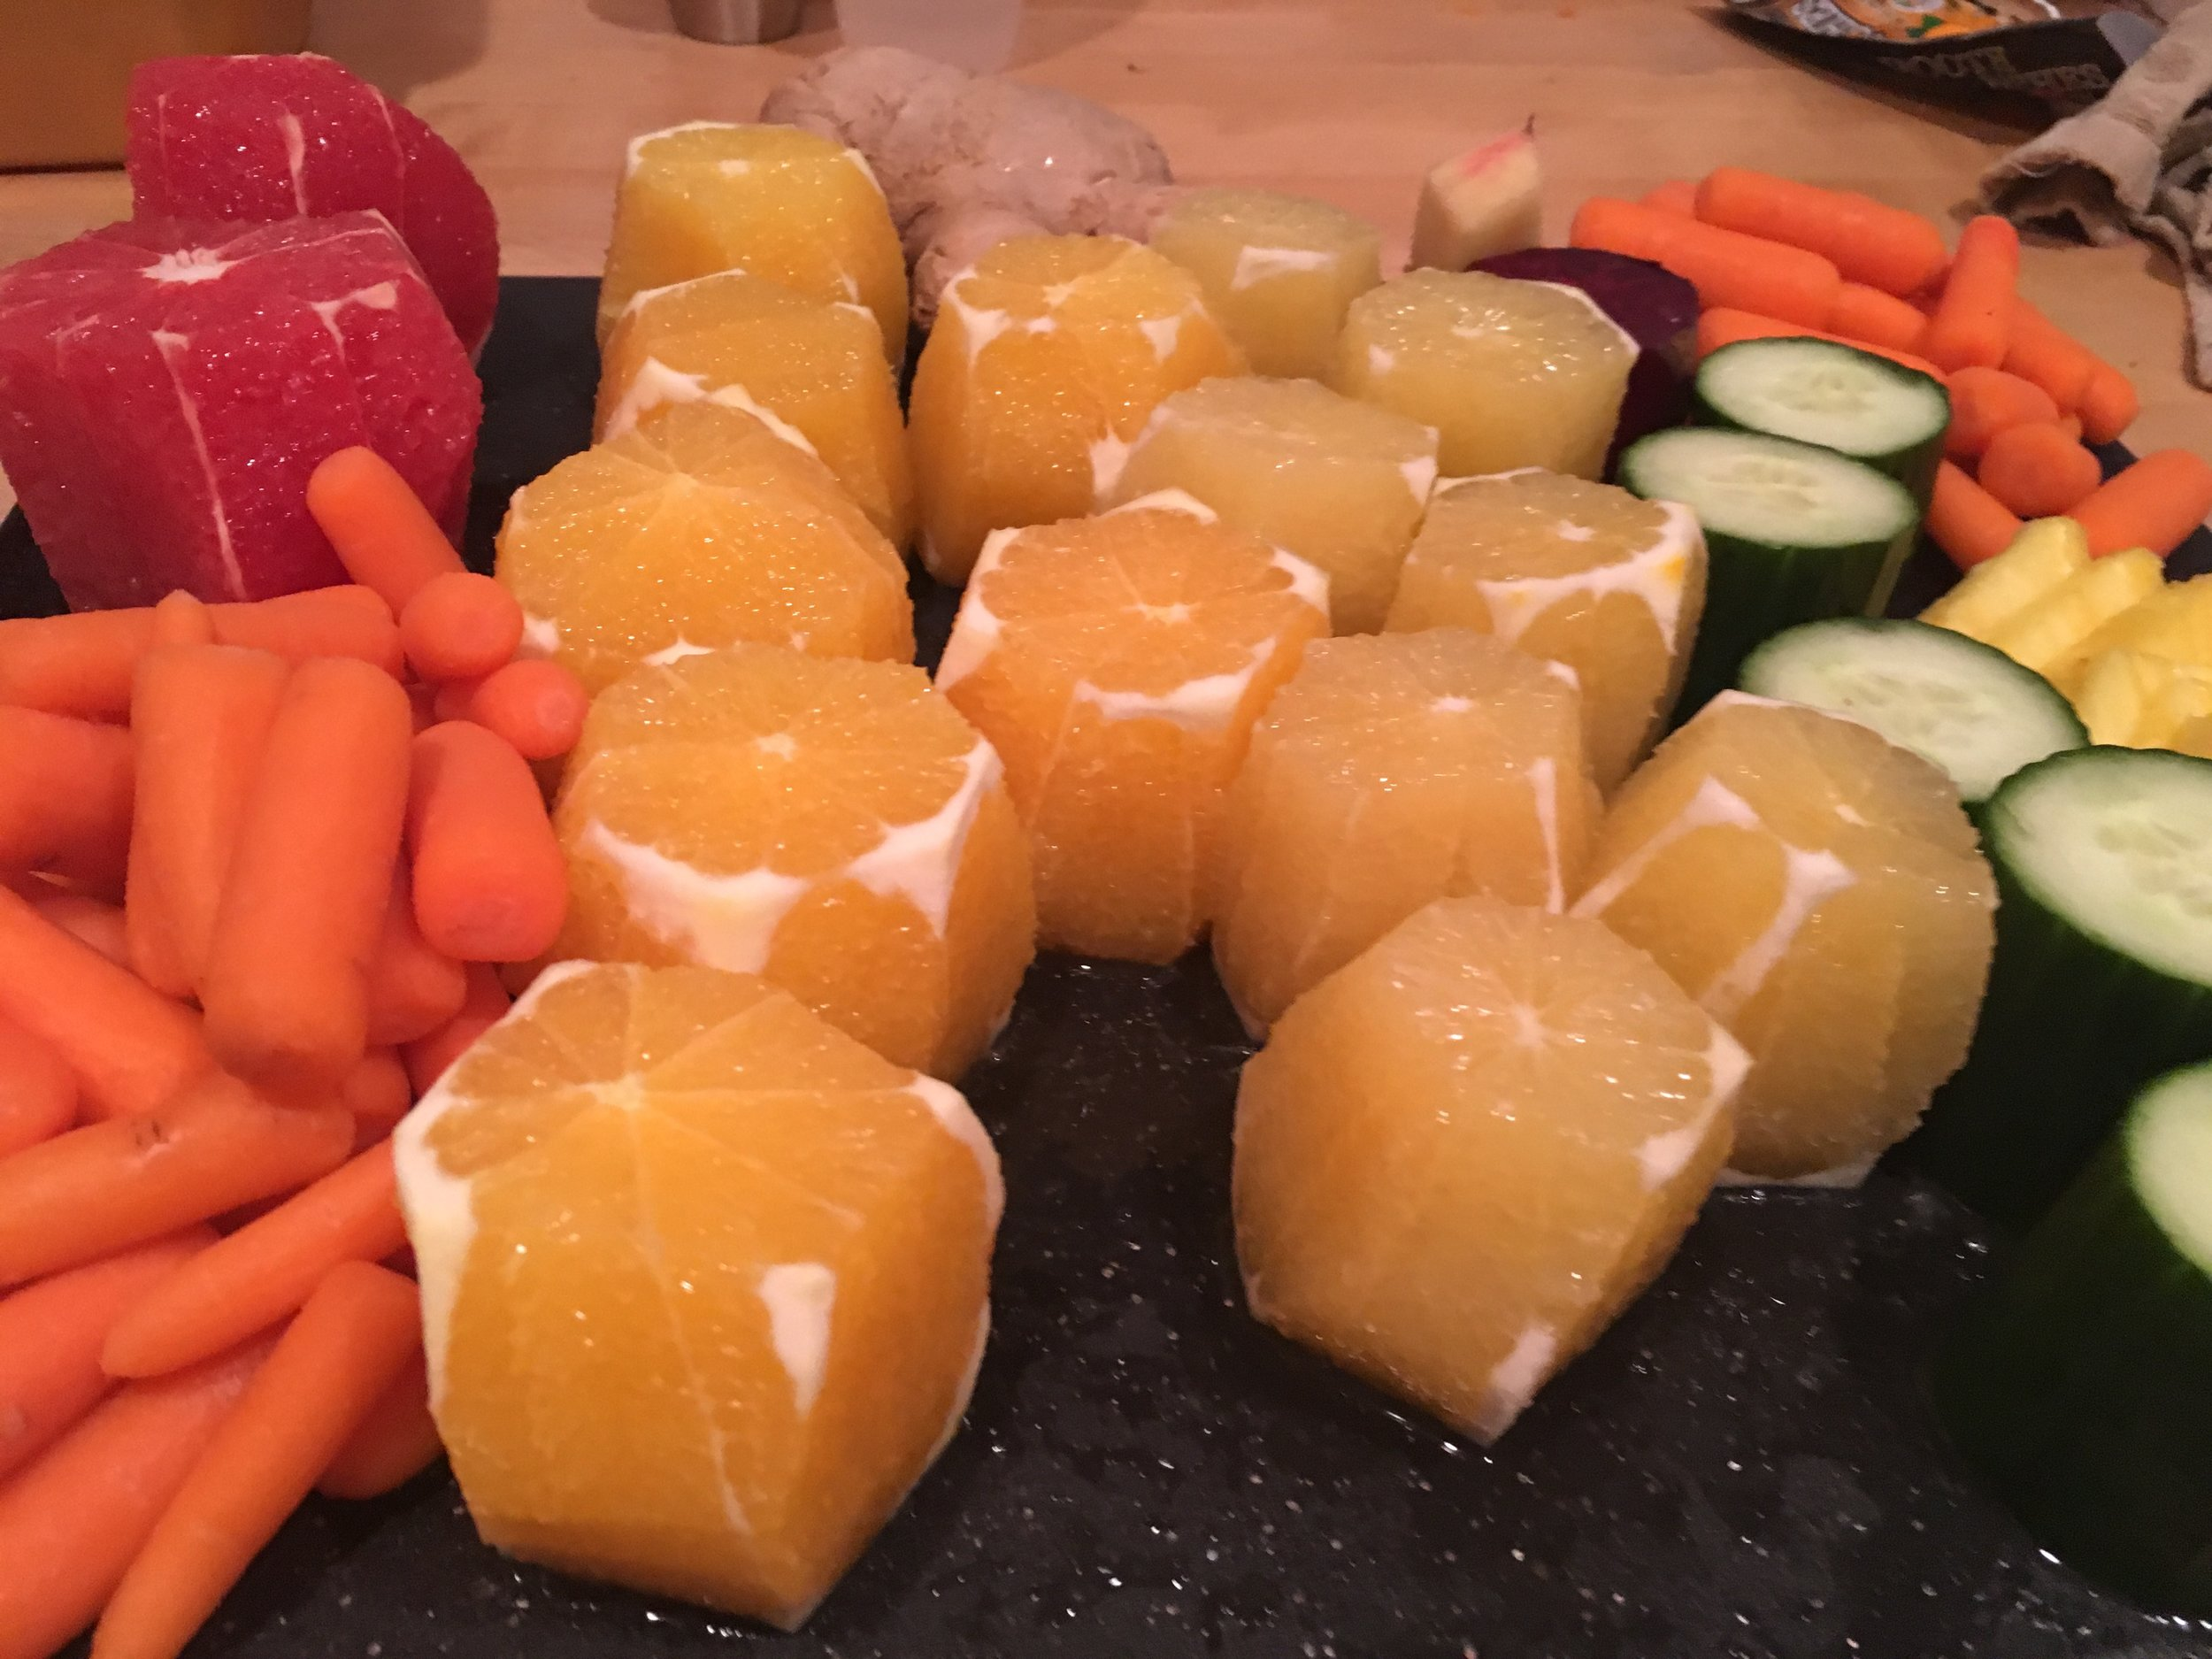 My attempt to avoid the sickness Sunday night - Juicing is fun and messy!